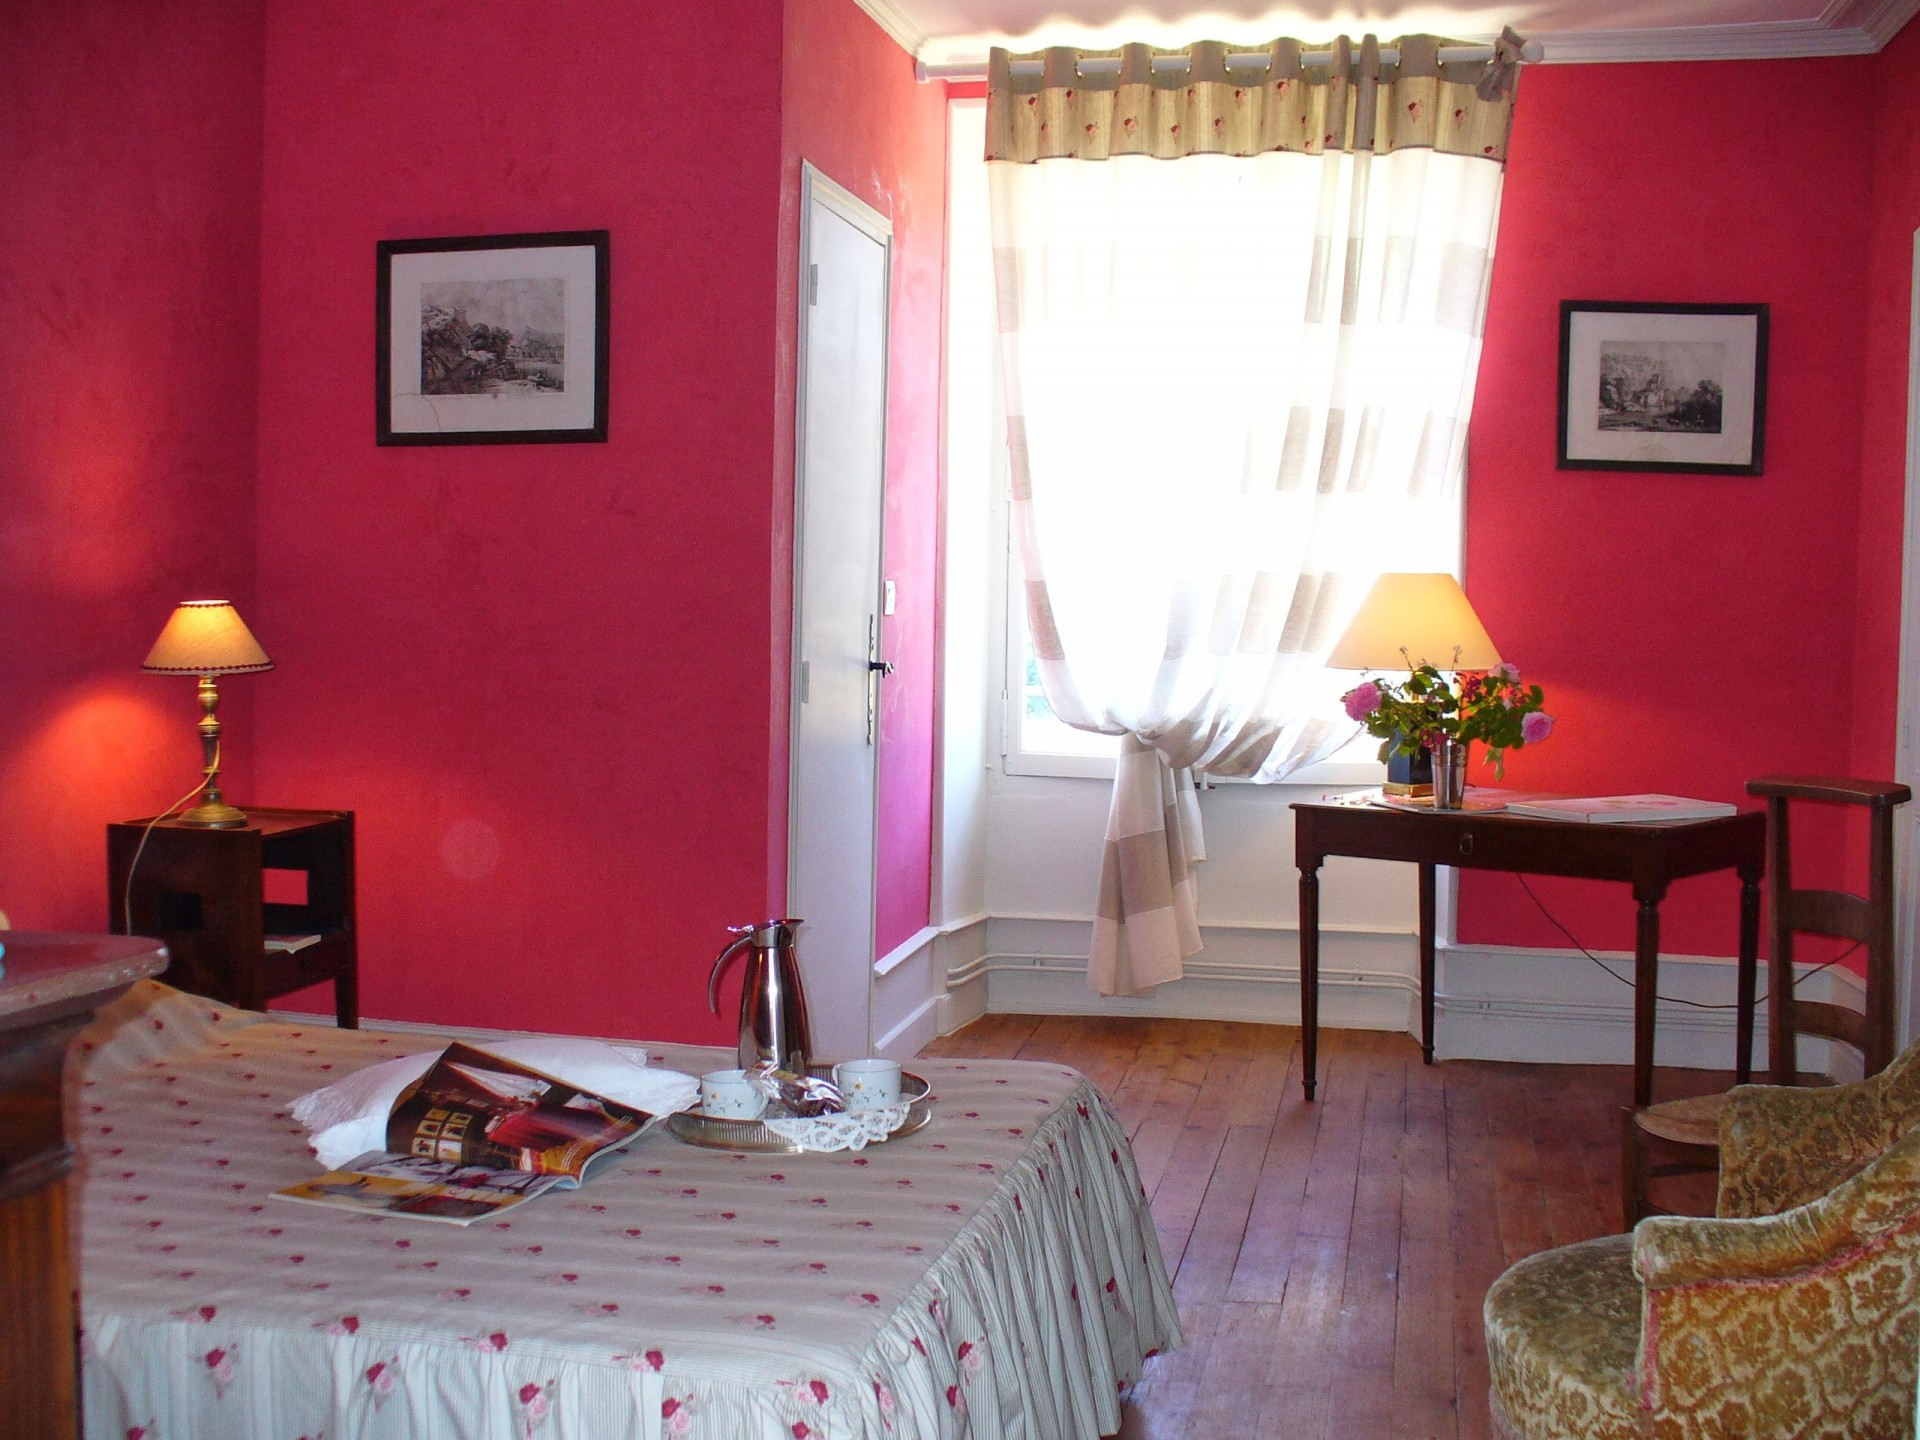 ch-774-s-chambre-rouge-4234